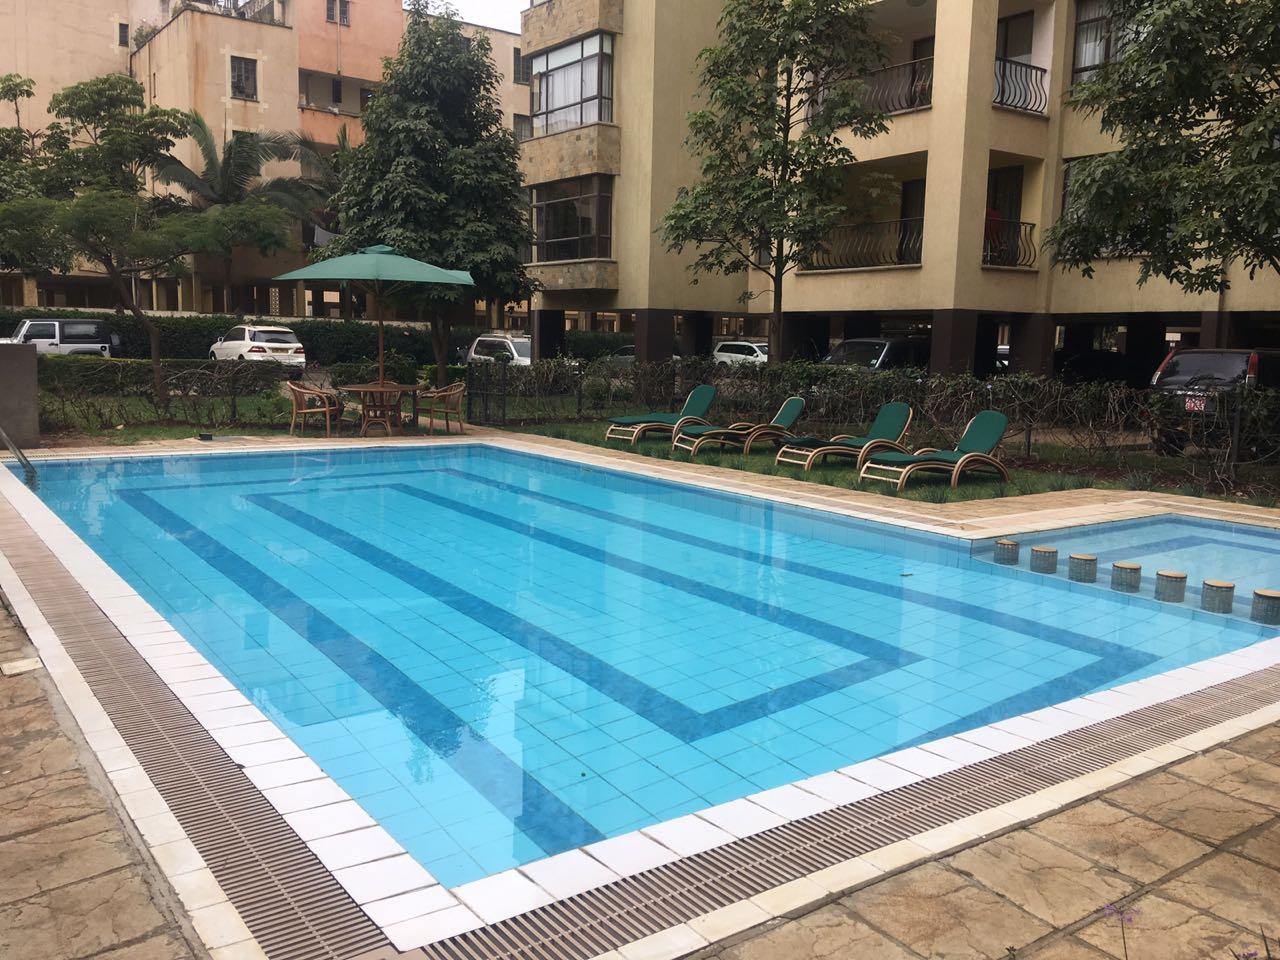 3 bedroom house in Kilimani opposite Yaya Centre